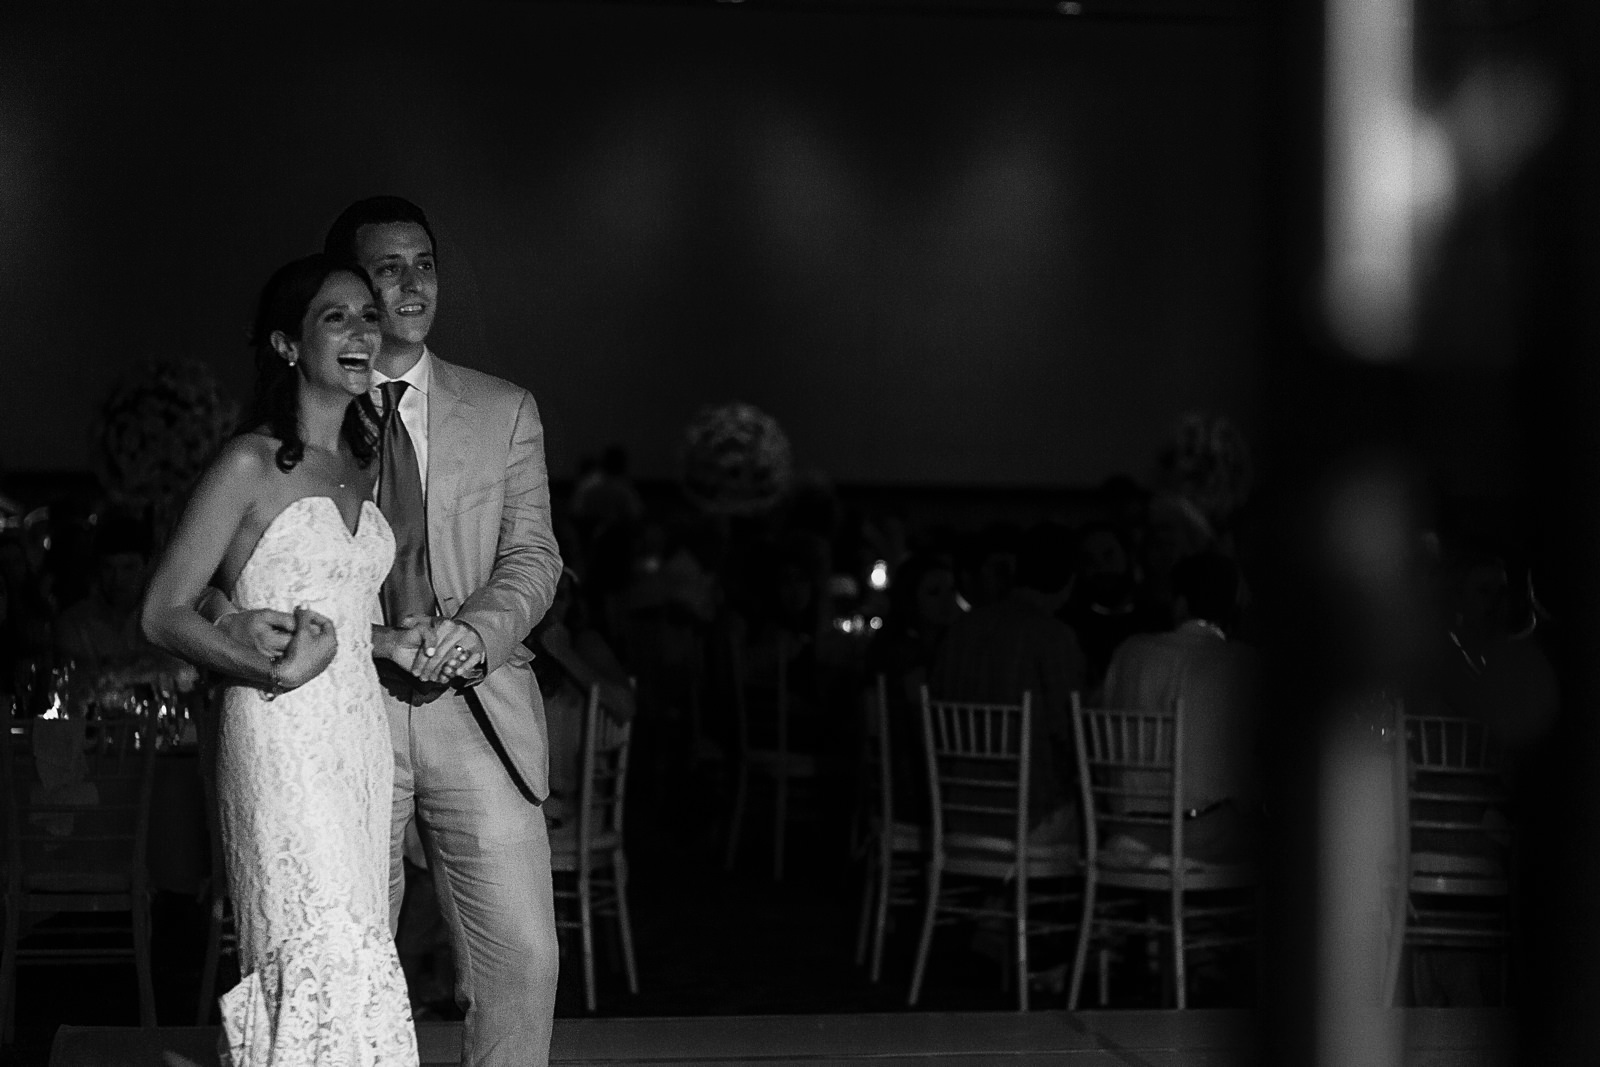 "Couple reaction to bridesmaid singing ""At last"" on stage during wedding reception - Eder Acevedo cancun los cabos vallarta wedding photographer"